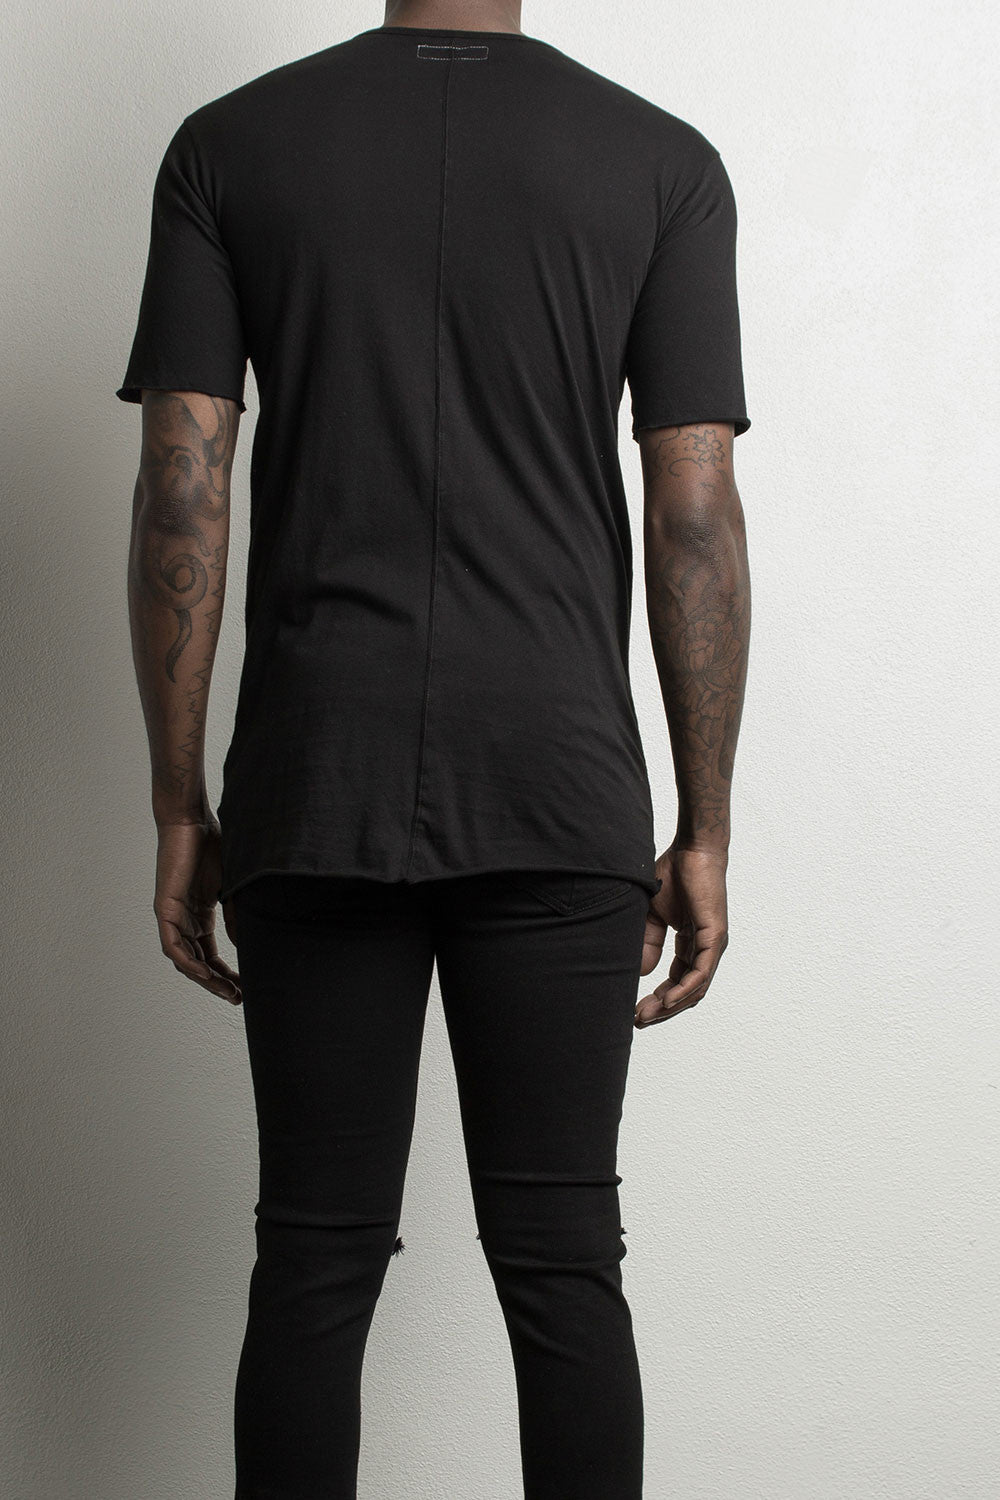 Black loose t-shirt by daniel patrick